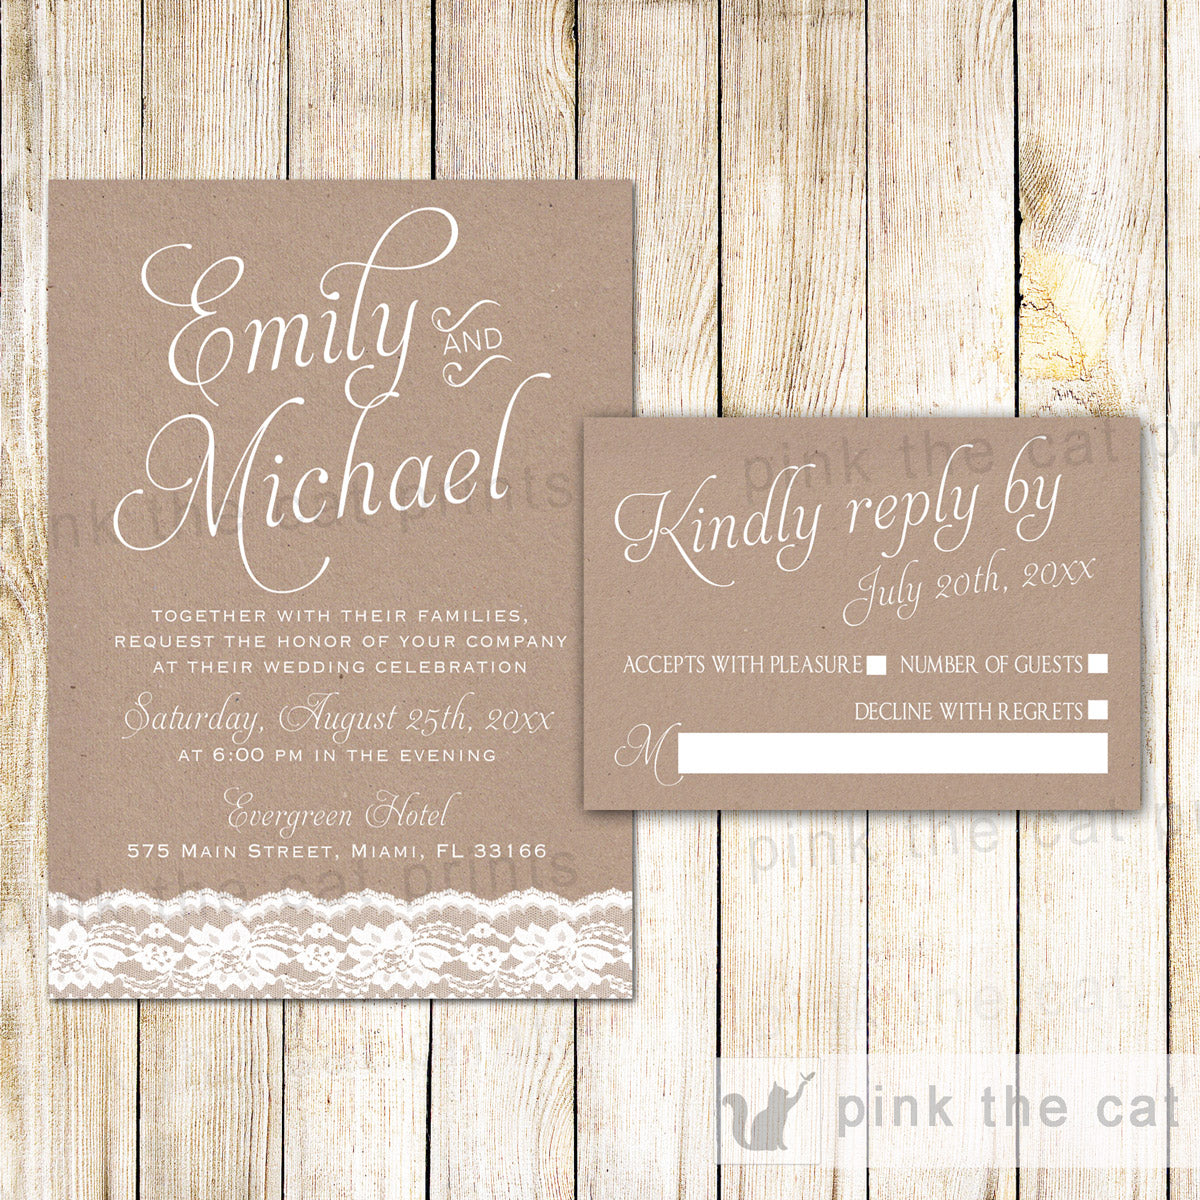 Wedding Invitation Postcard: Lace Rustic Wedding Invitation & RSVP Card